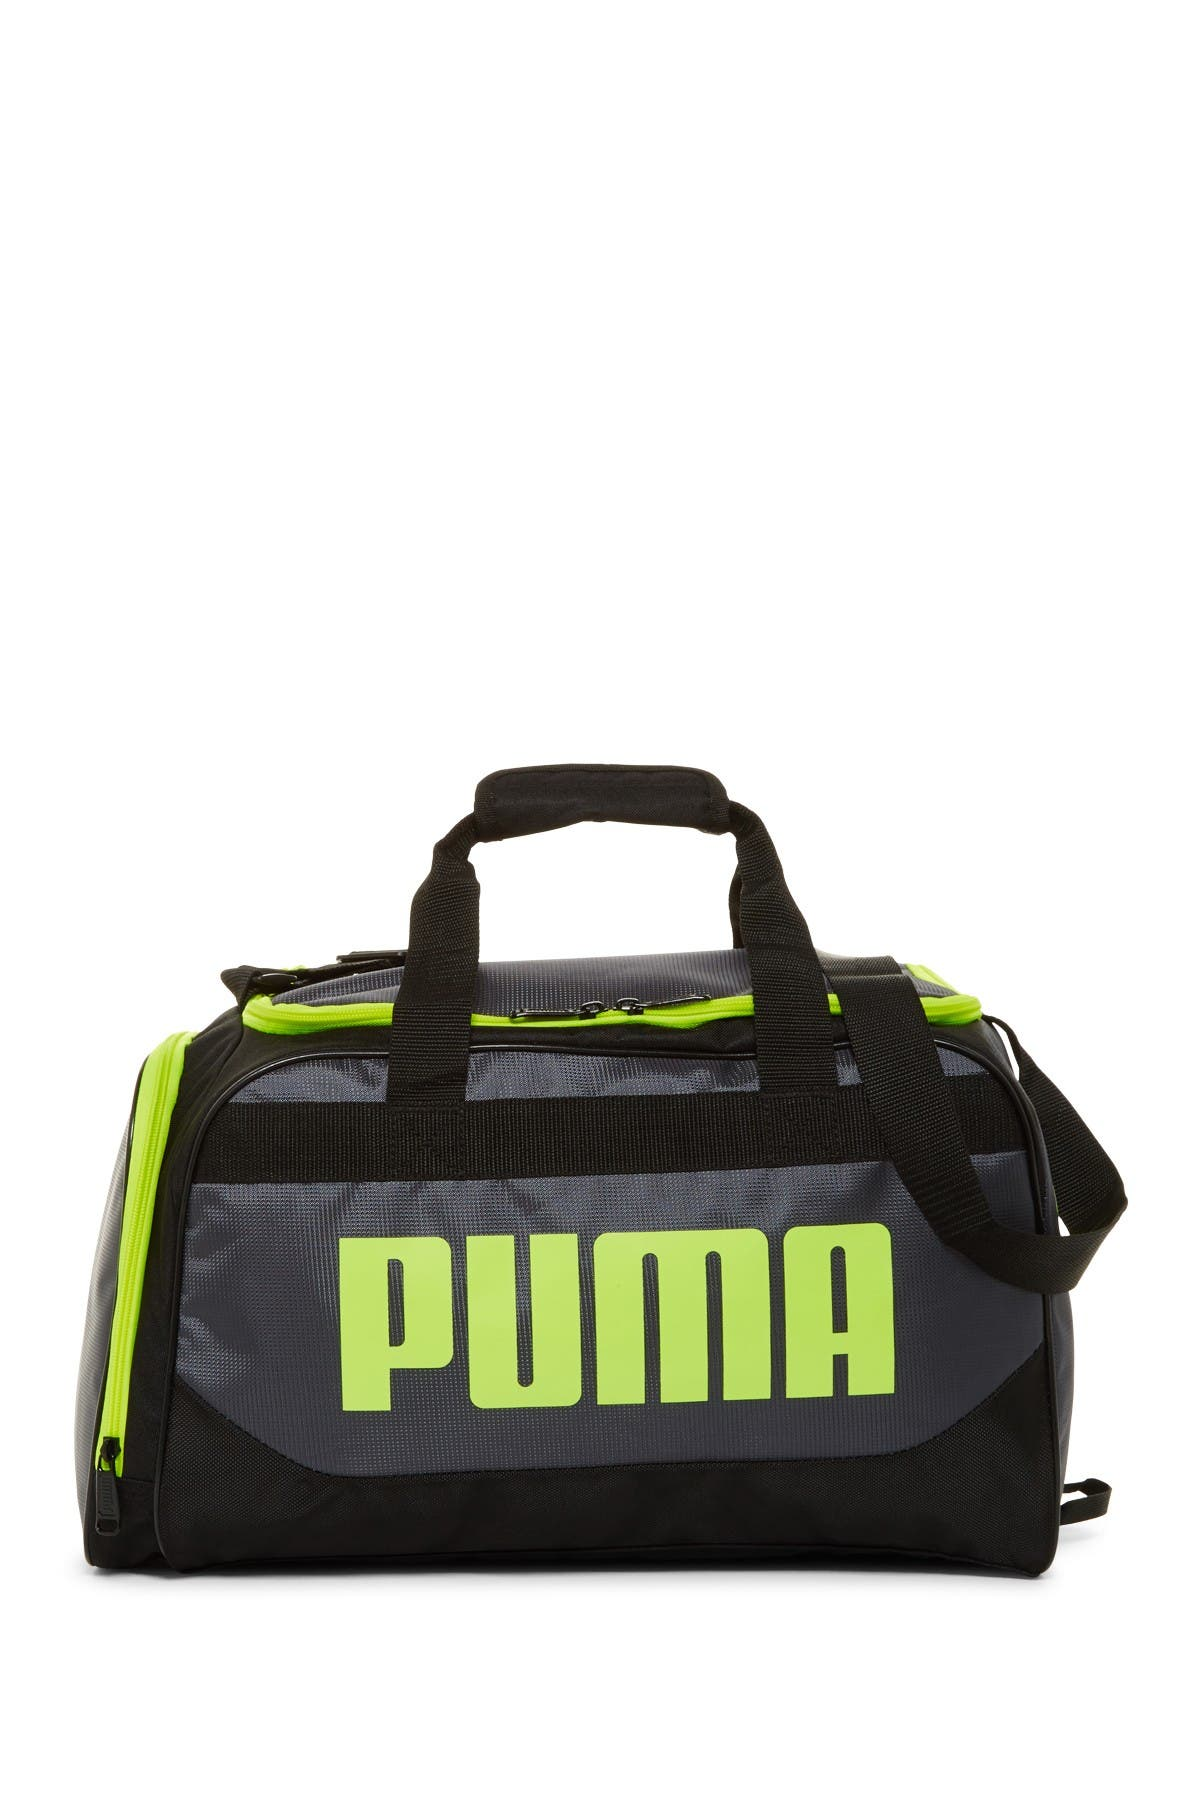 "Image of PUMA Transformation 2.0 19"" Duffel Bag"